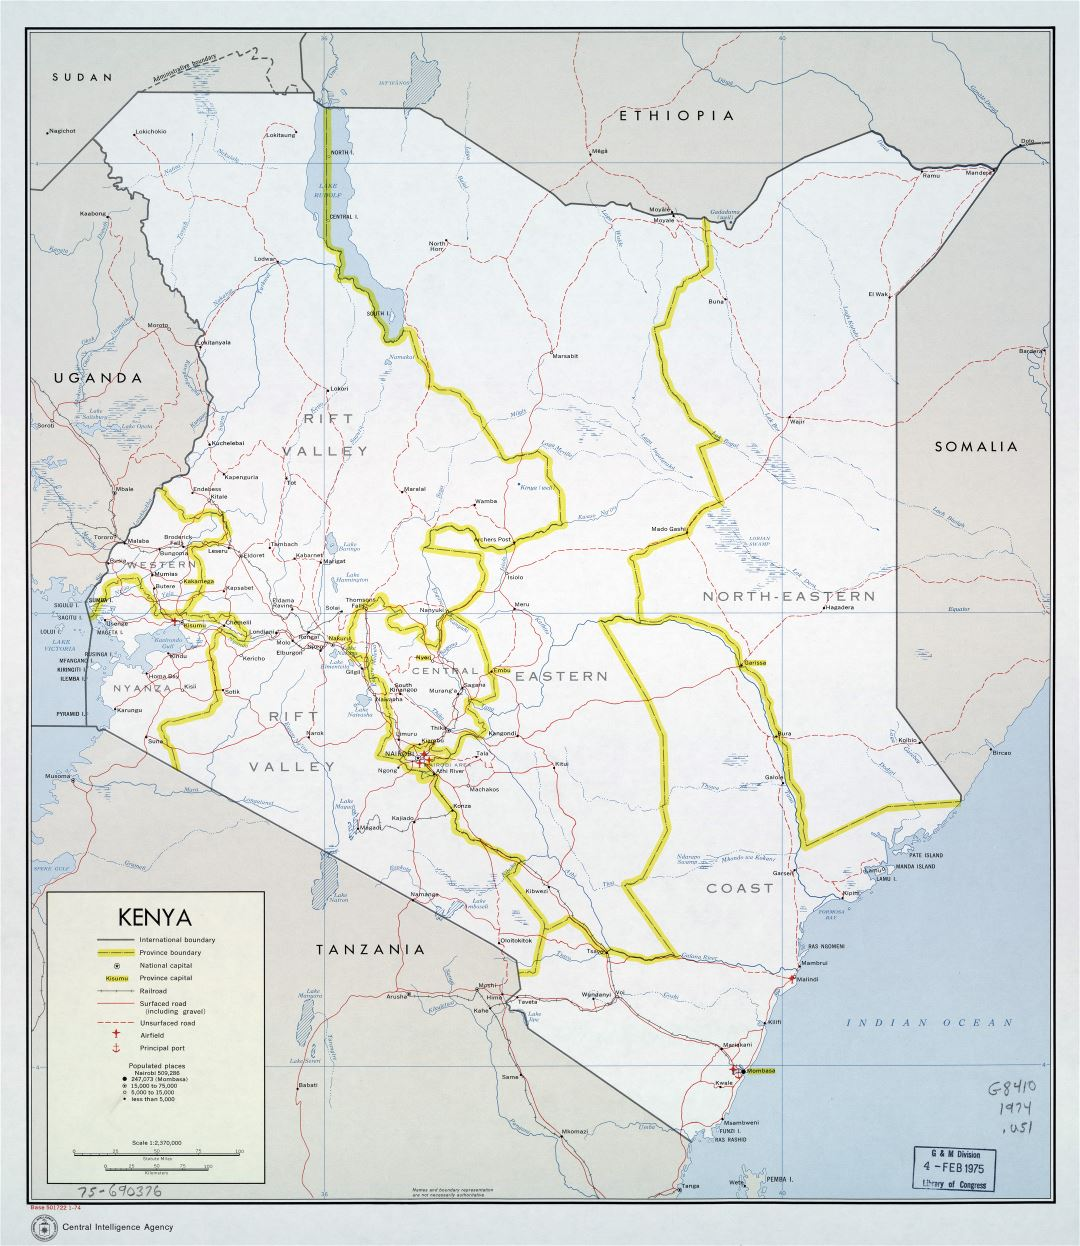 Large scale political and administrative map of Kenya with roads, railroads, cities, ports and airports - 1974